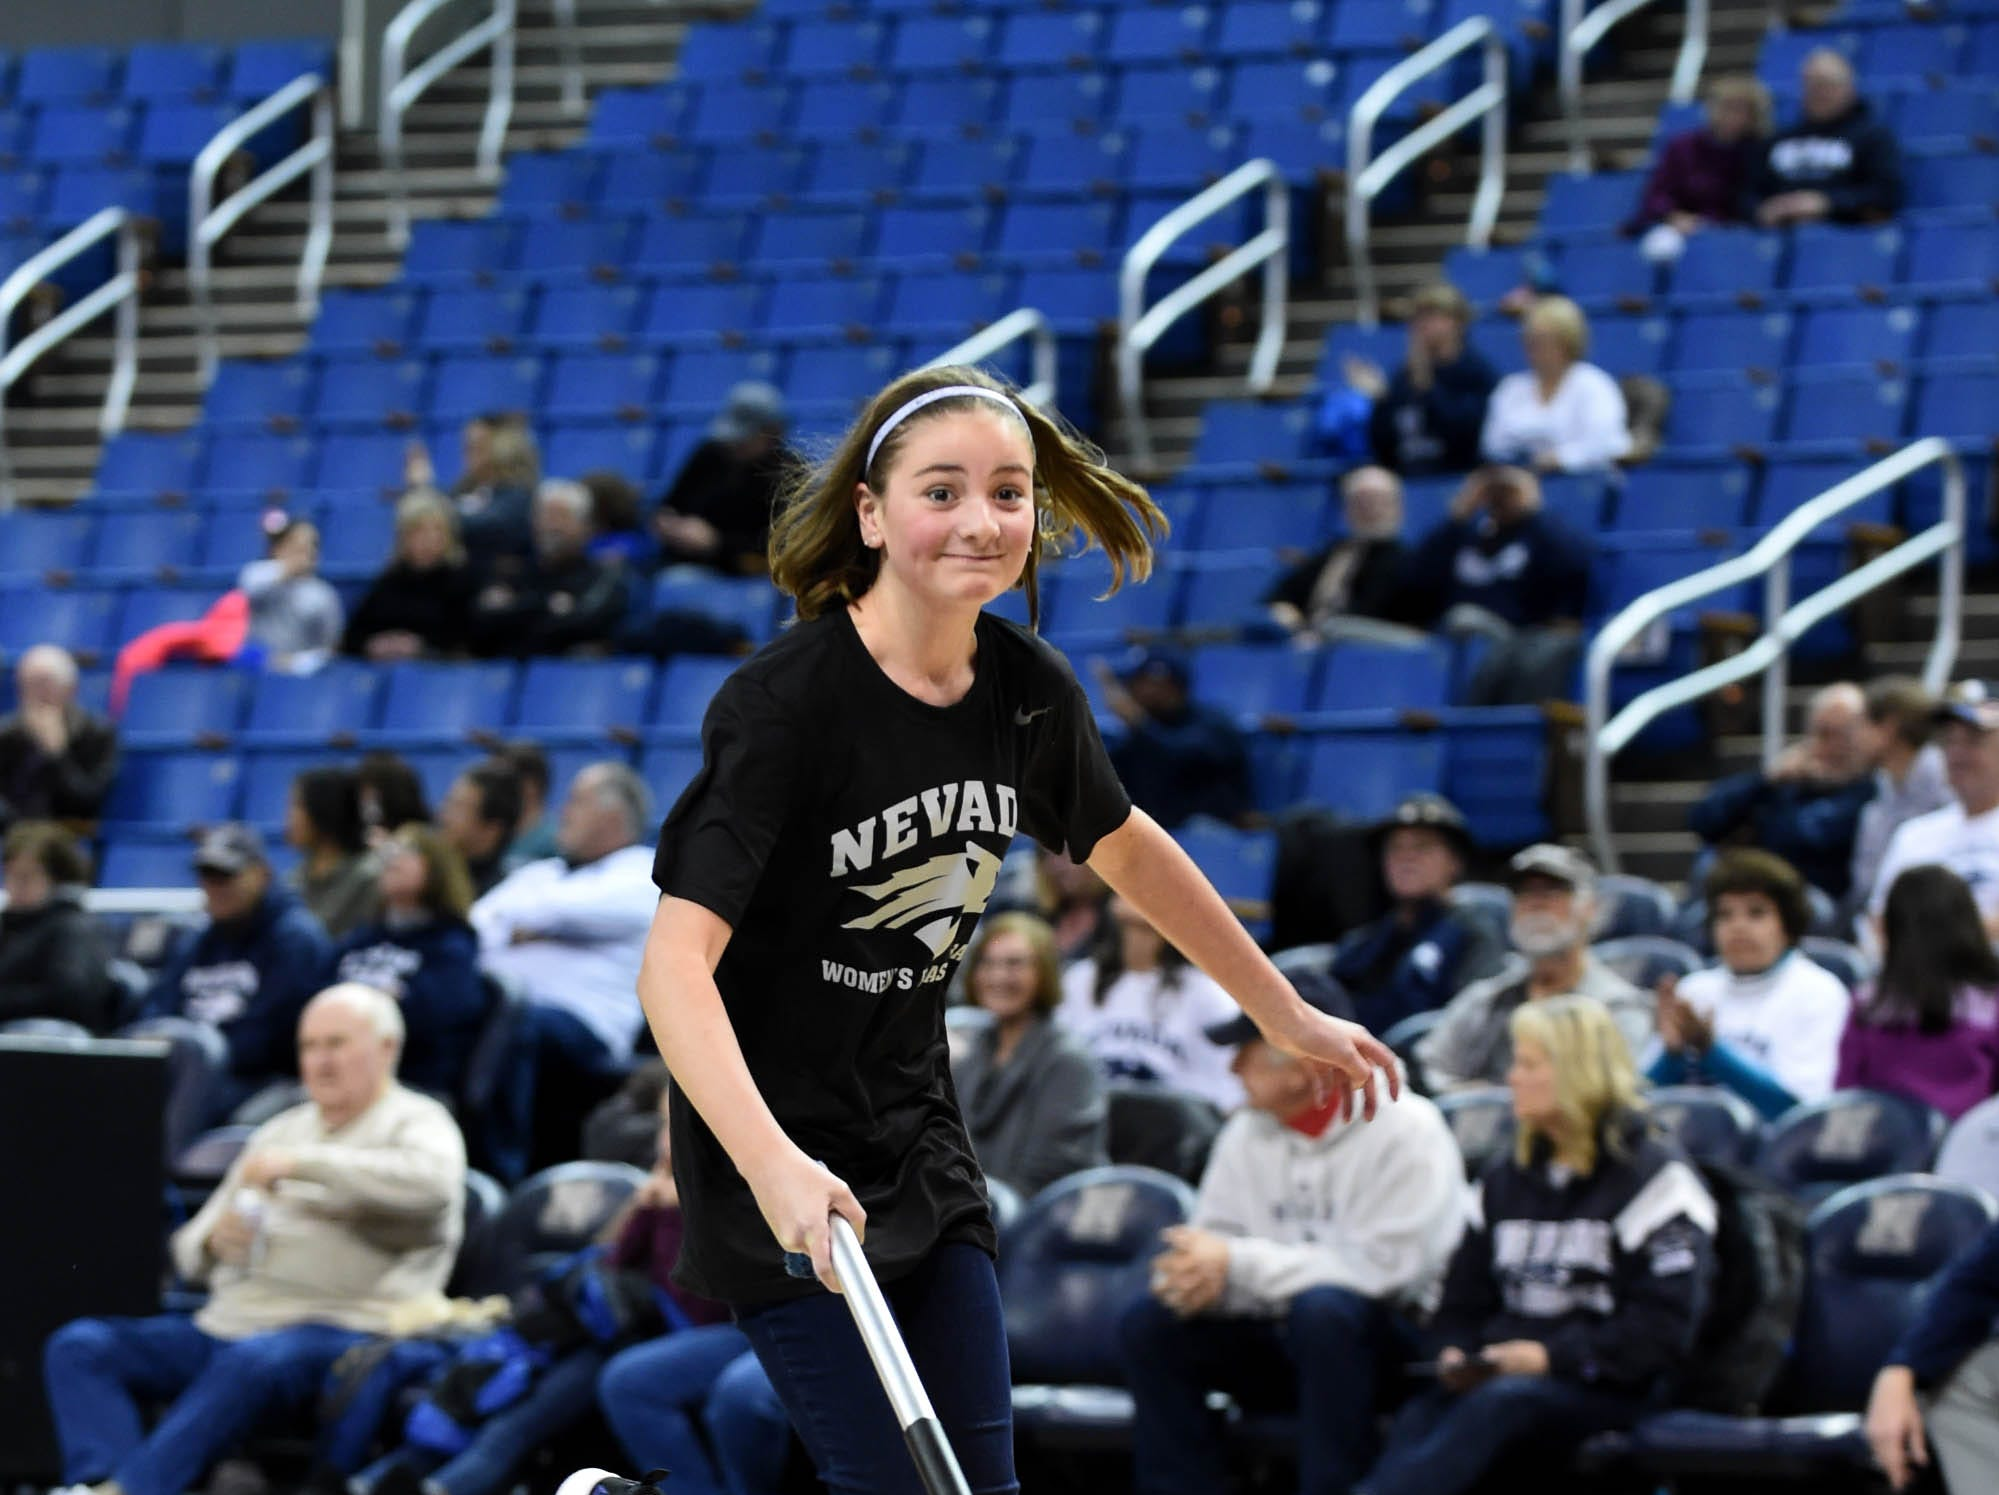 Images from the Boise State at Nevada women's basketball game at Lawlor Events Center on Jan. 16, 2019.